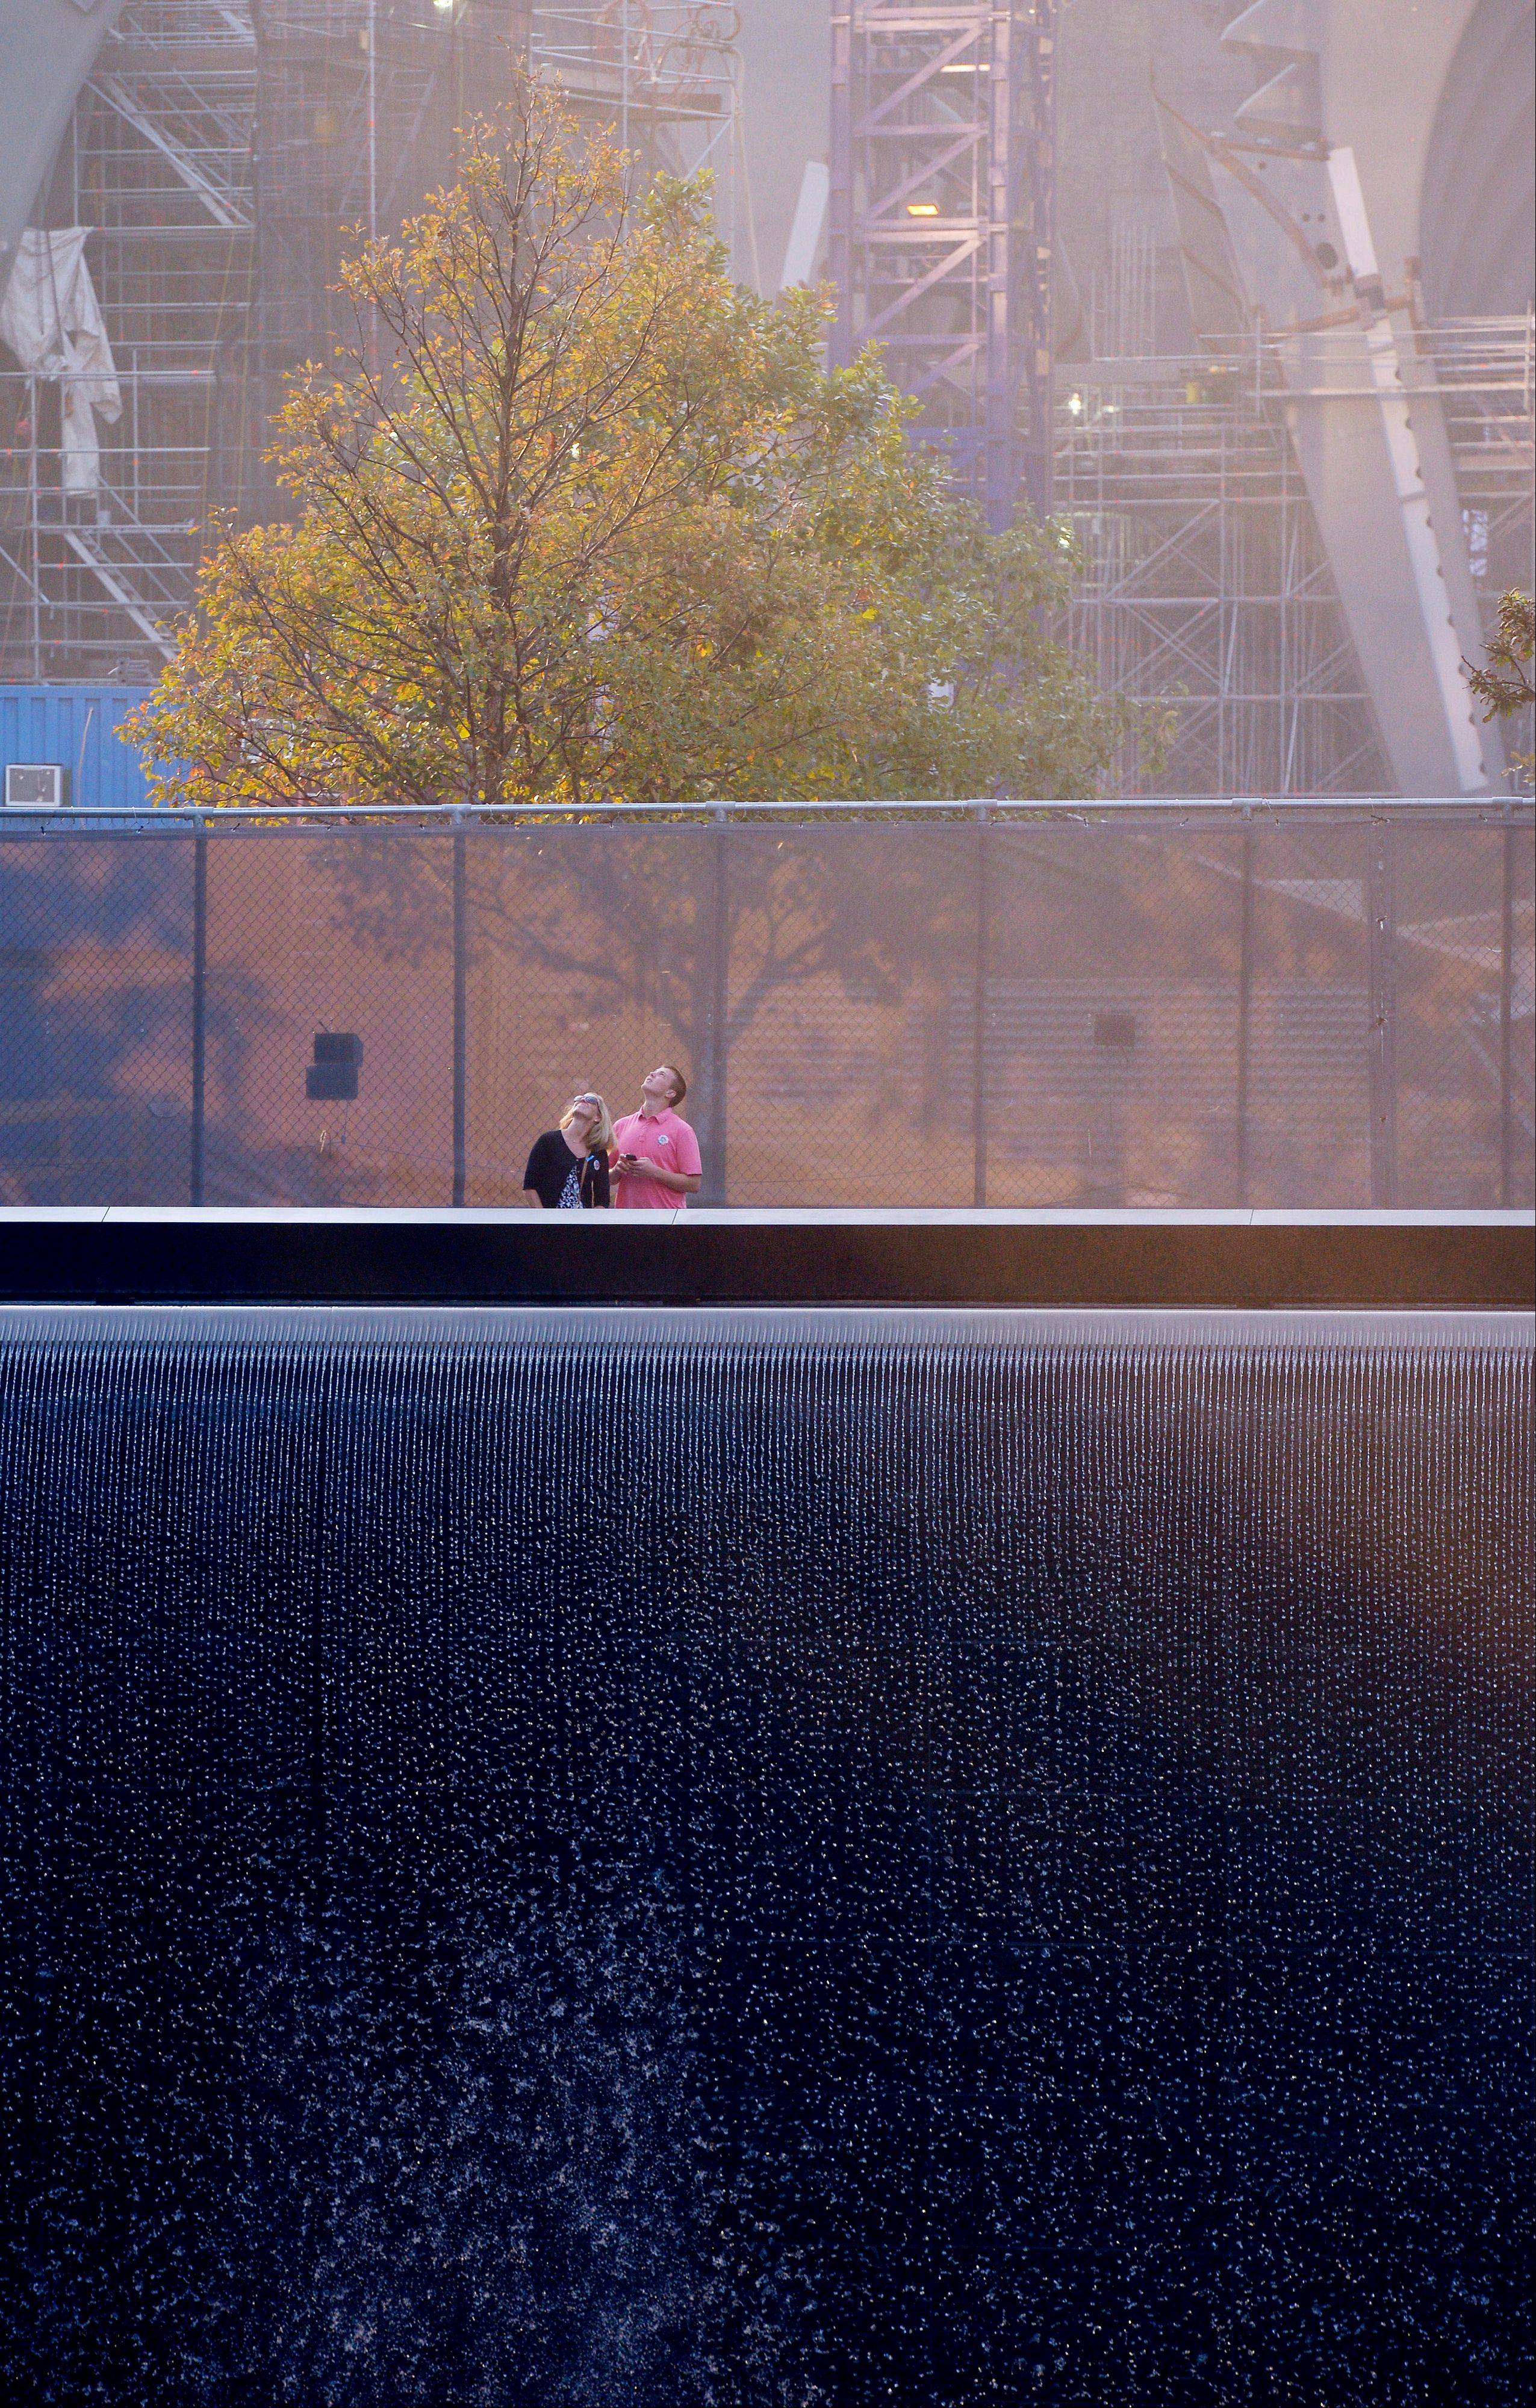 Two people stand at the edge of the north reflecting pool at the Sept. 11 memorial during a ceremony marking the 12th anniversary of the 9/11 attacks on the World Trade Center, in New York, Wednesday, Sept. 11, 2013.